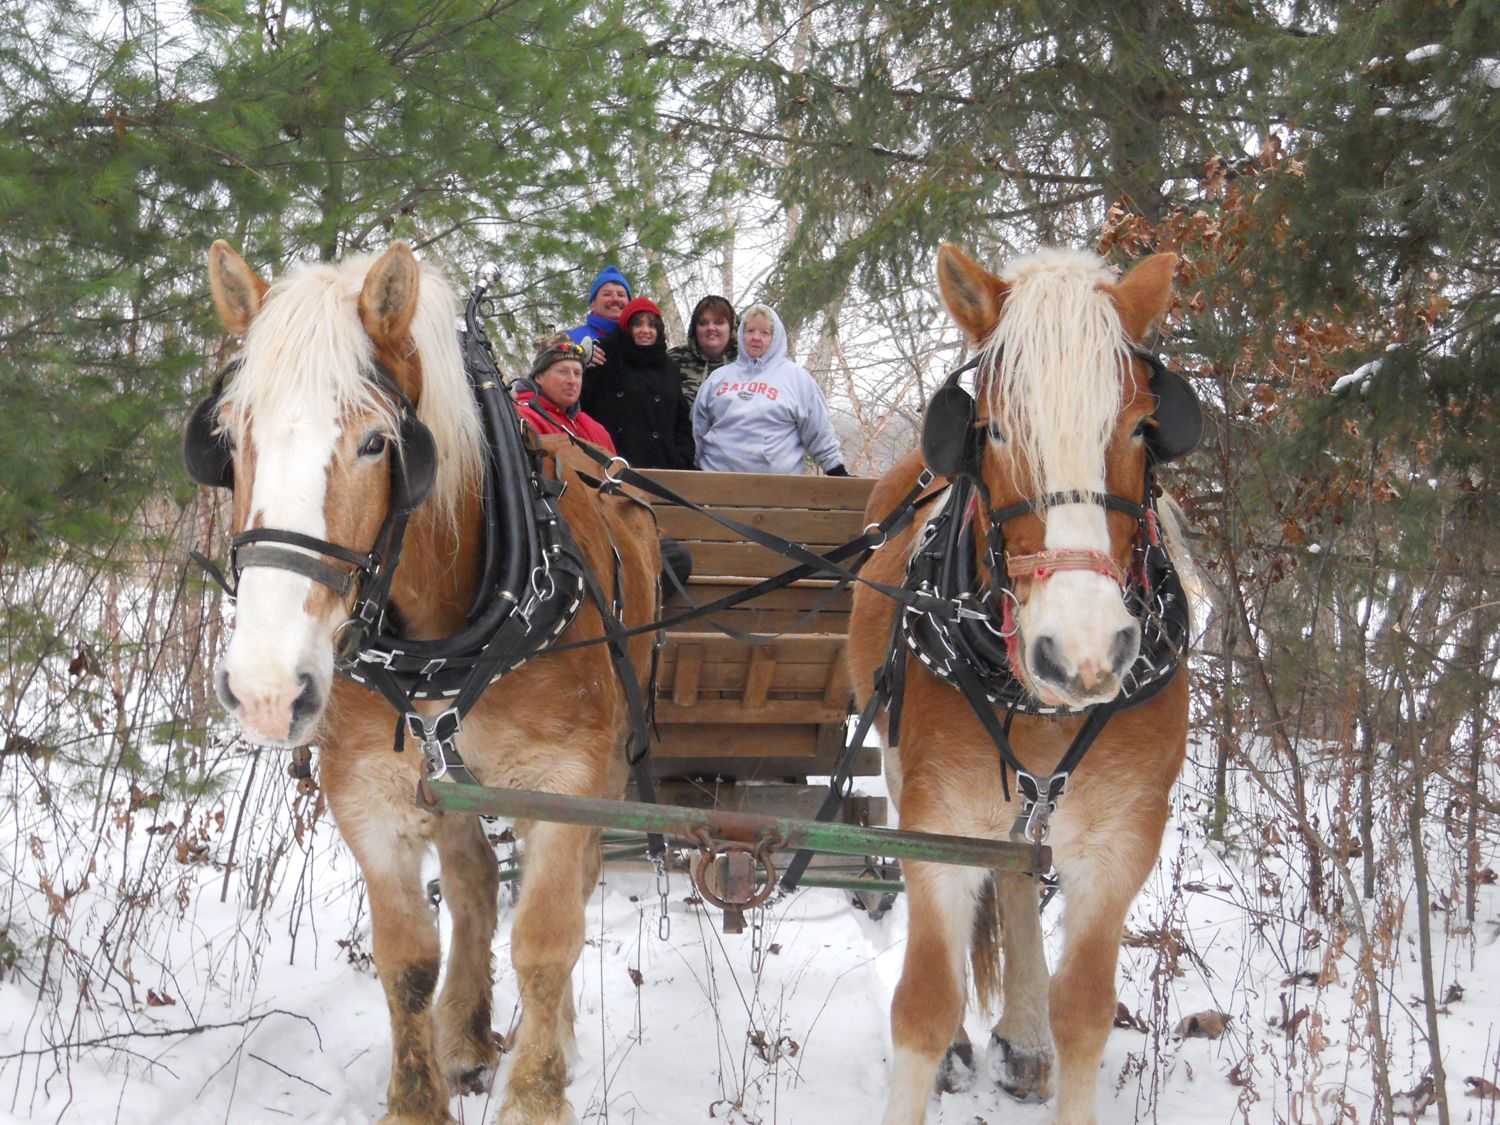 Sleigh Rides At Christmas Mountain Village Great Winter Family Place In Wisconsin Dells Nearby Our Lak Wisconsin Dells Winter Wisconsin Dells Wisconsin Travel